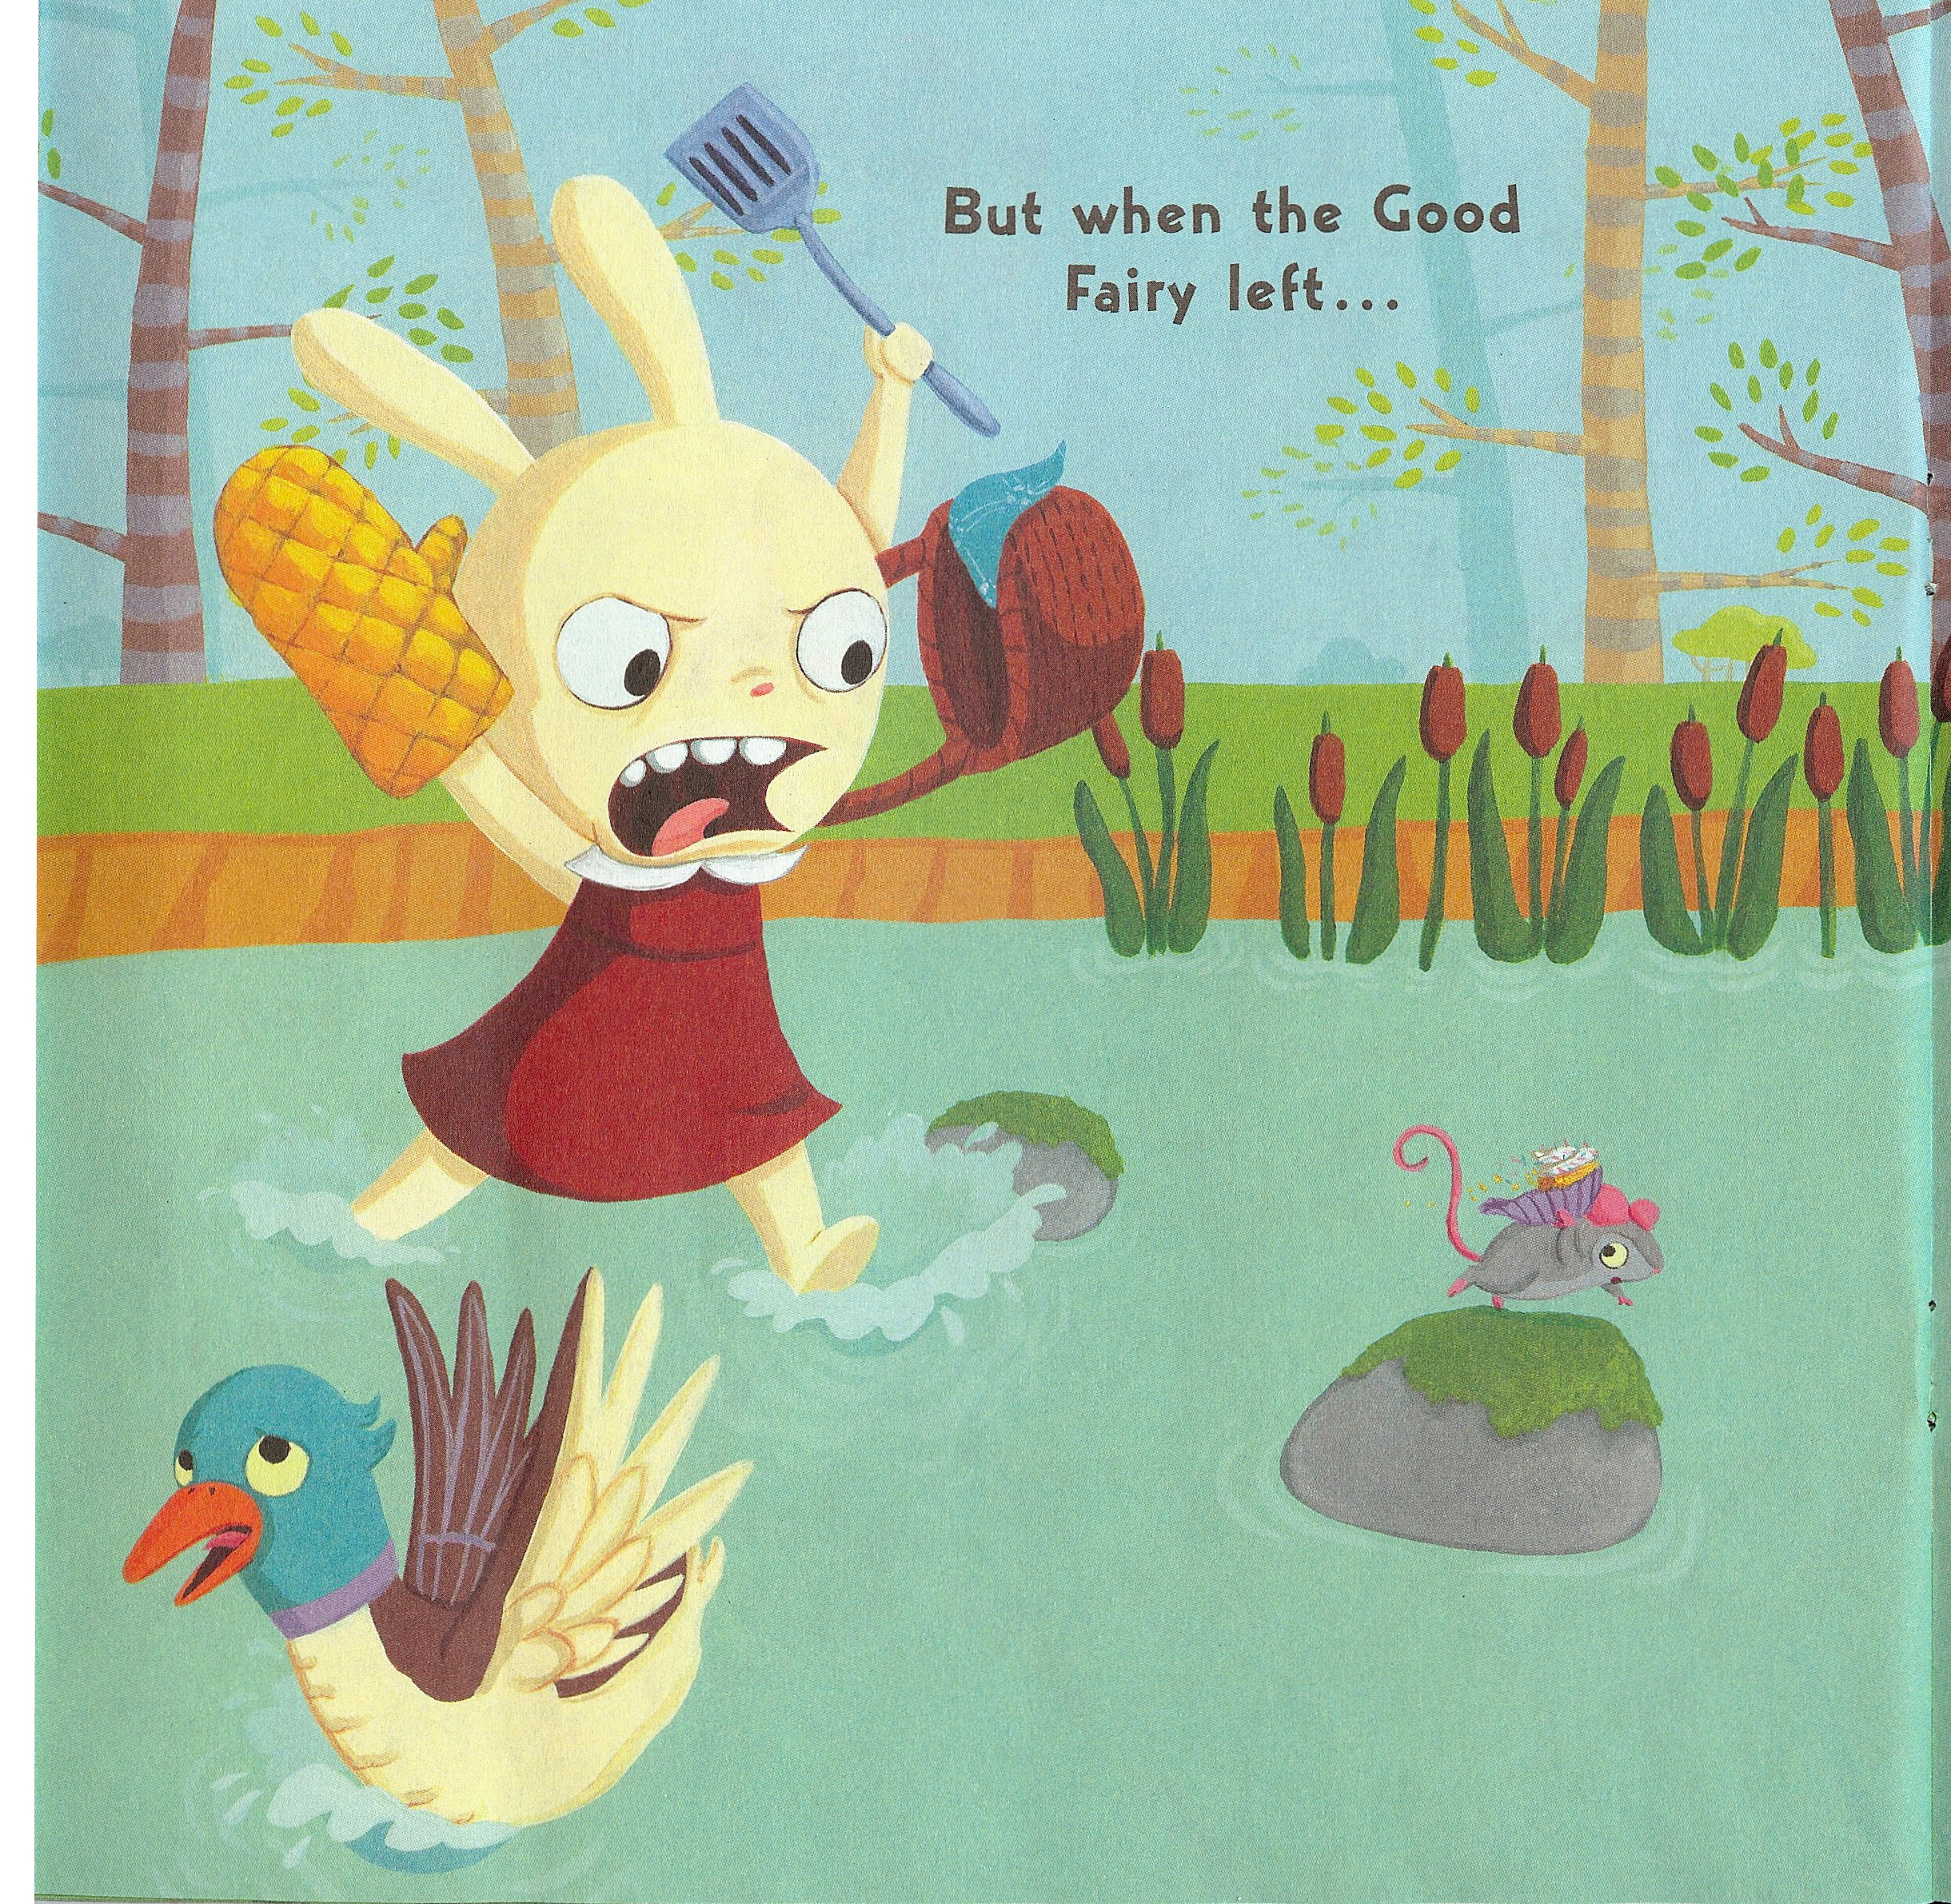 Books for the Easter Basket | Going on a Book Hunt